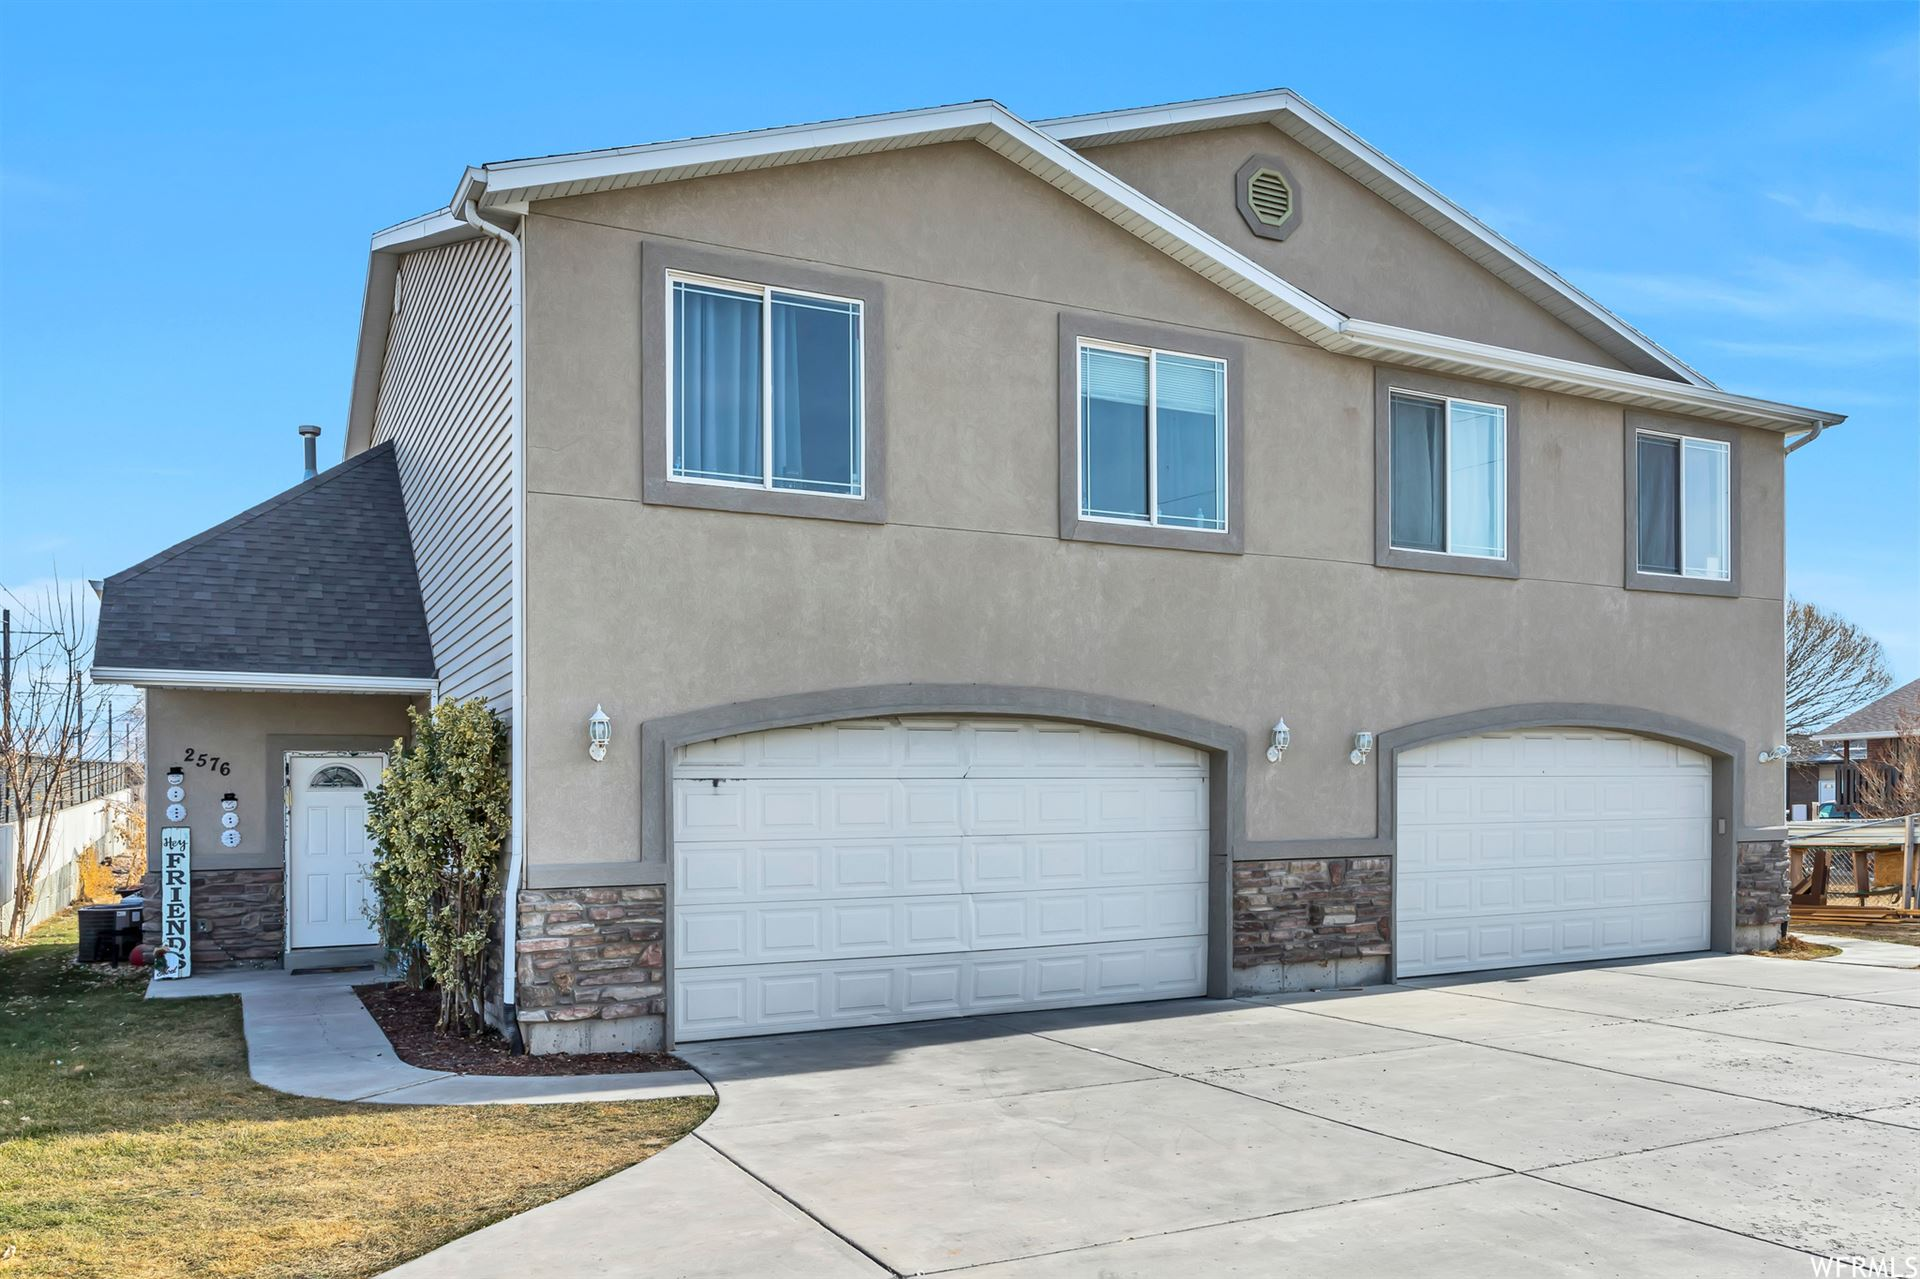 Photo of 2574 W ROBIN RD, West Valley City, UT 84119 (MLS # 1718748)